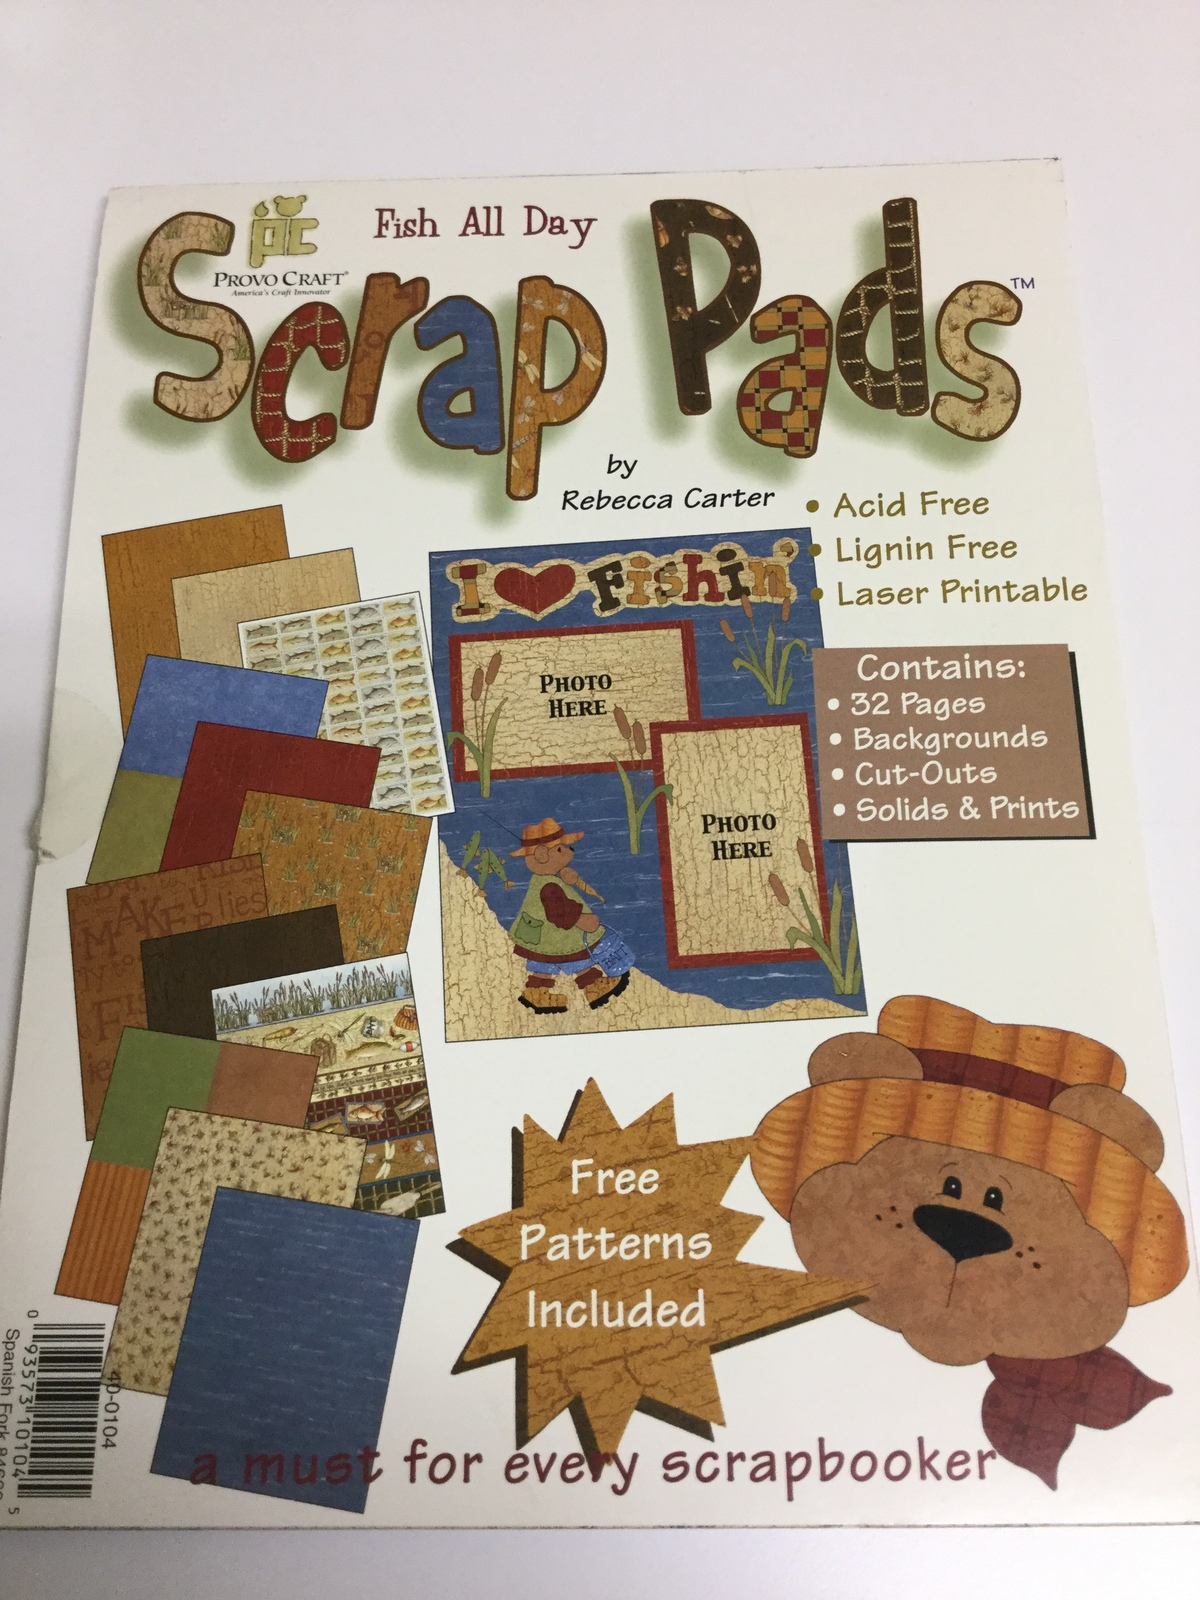 Provo Craft Two New Scrap Paper Pads Fish All Day bitty All Stars